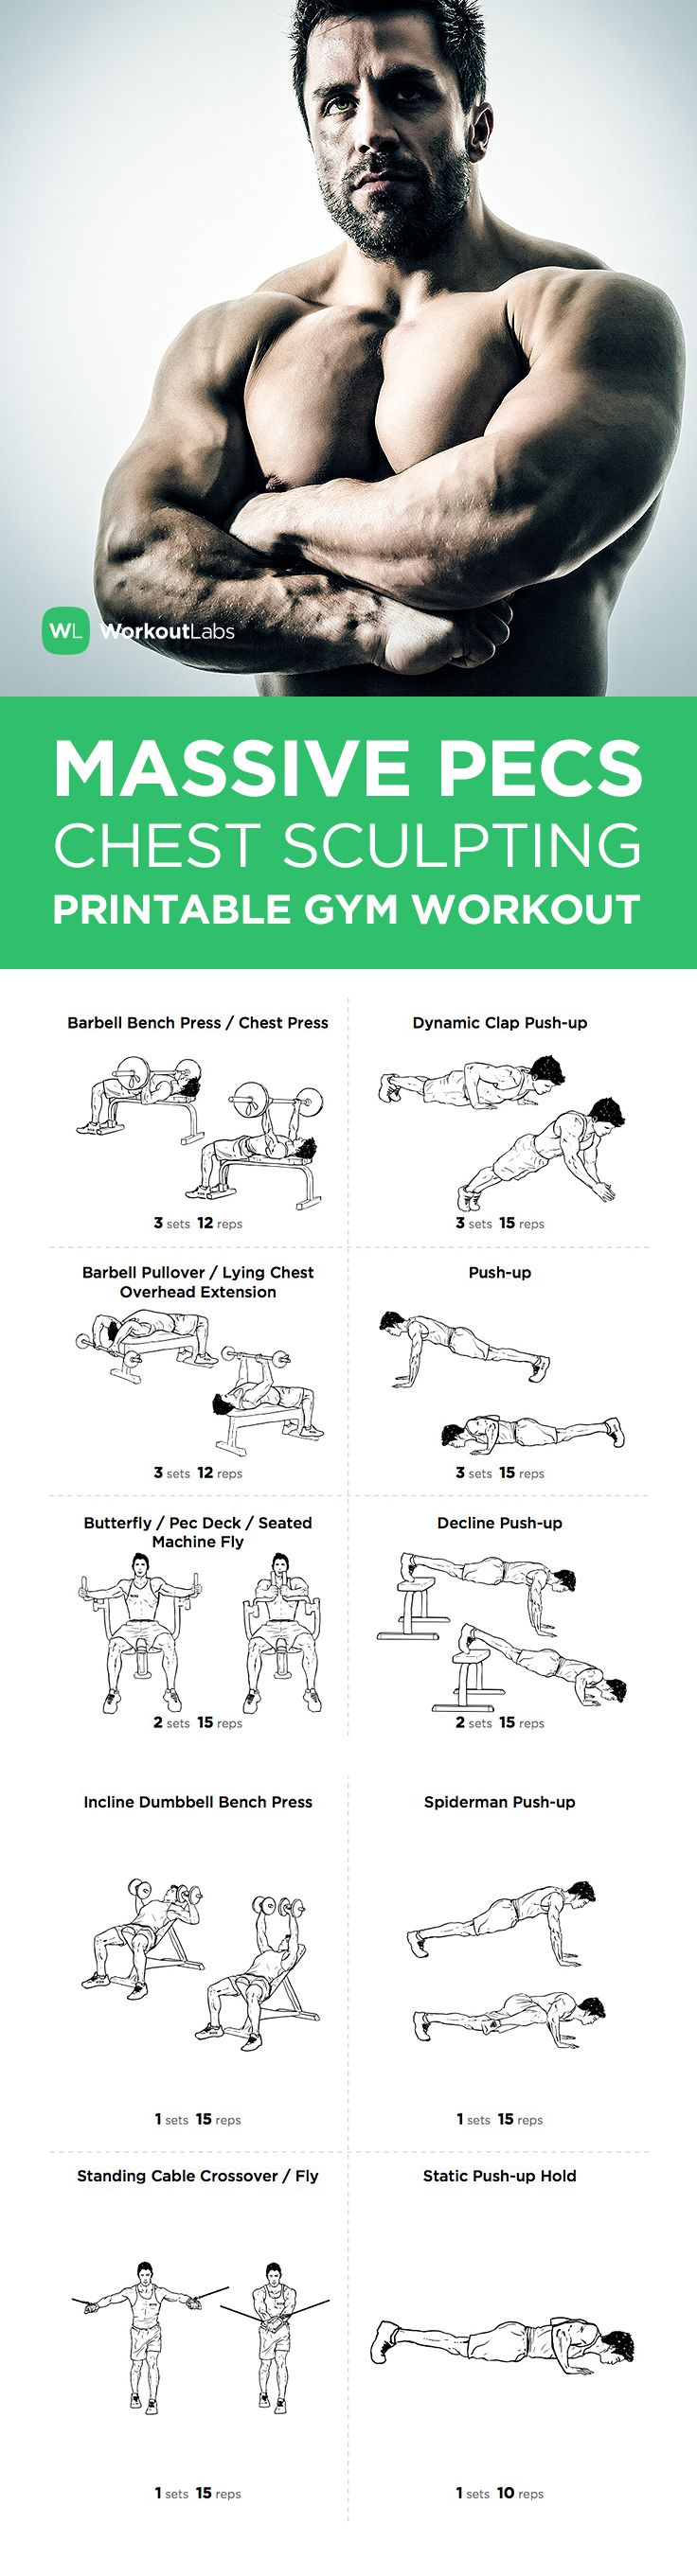 FREE PDF: Massive Pecs Chest Sculpting Workout for Men